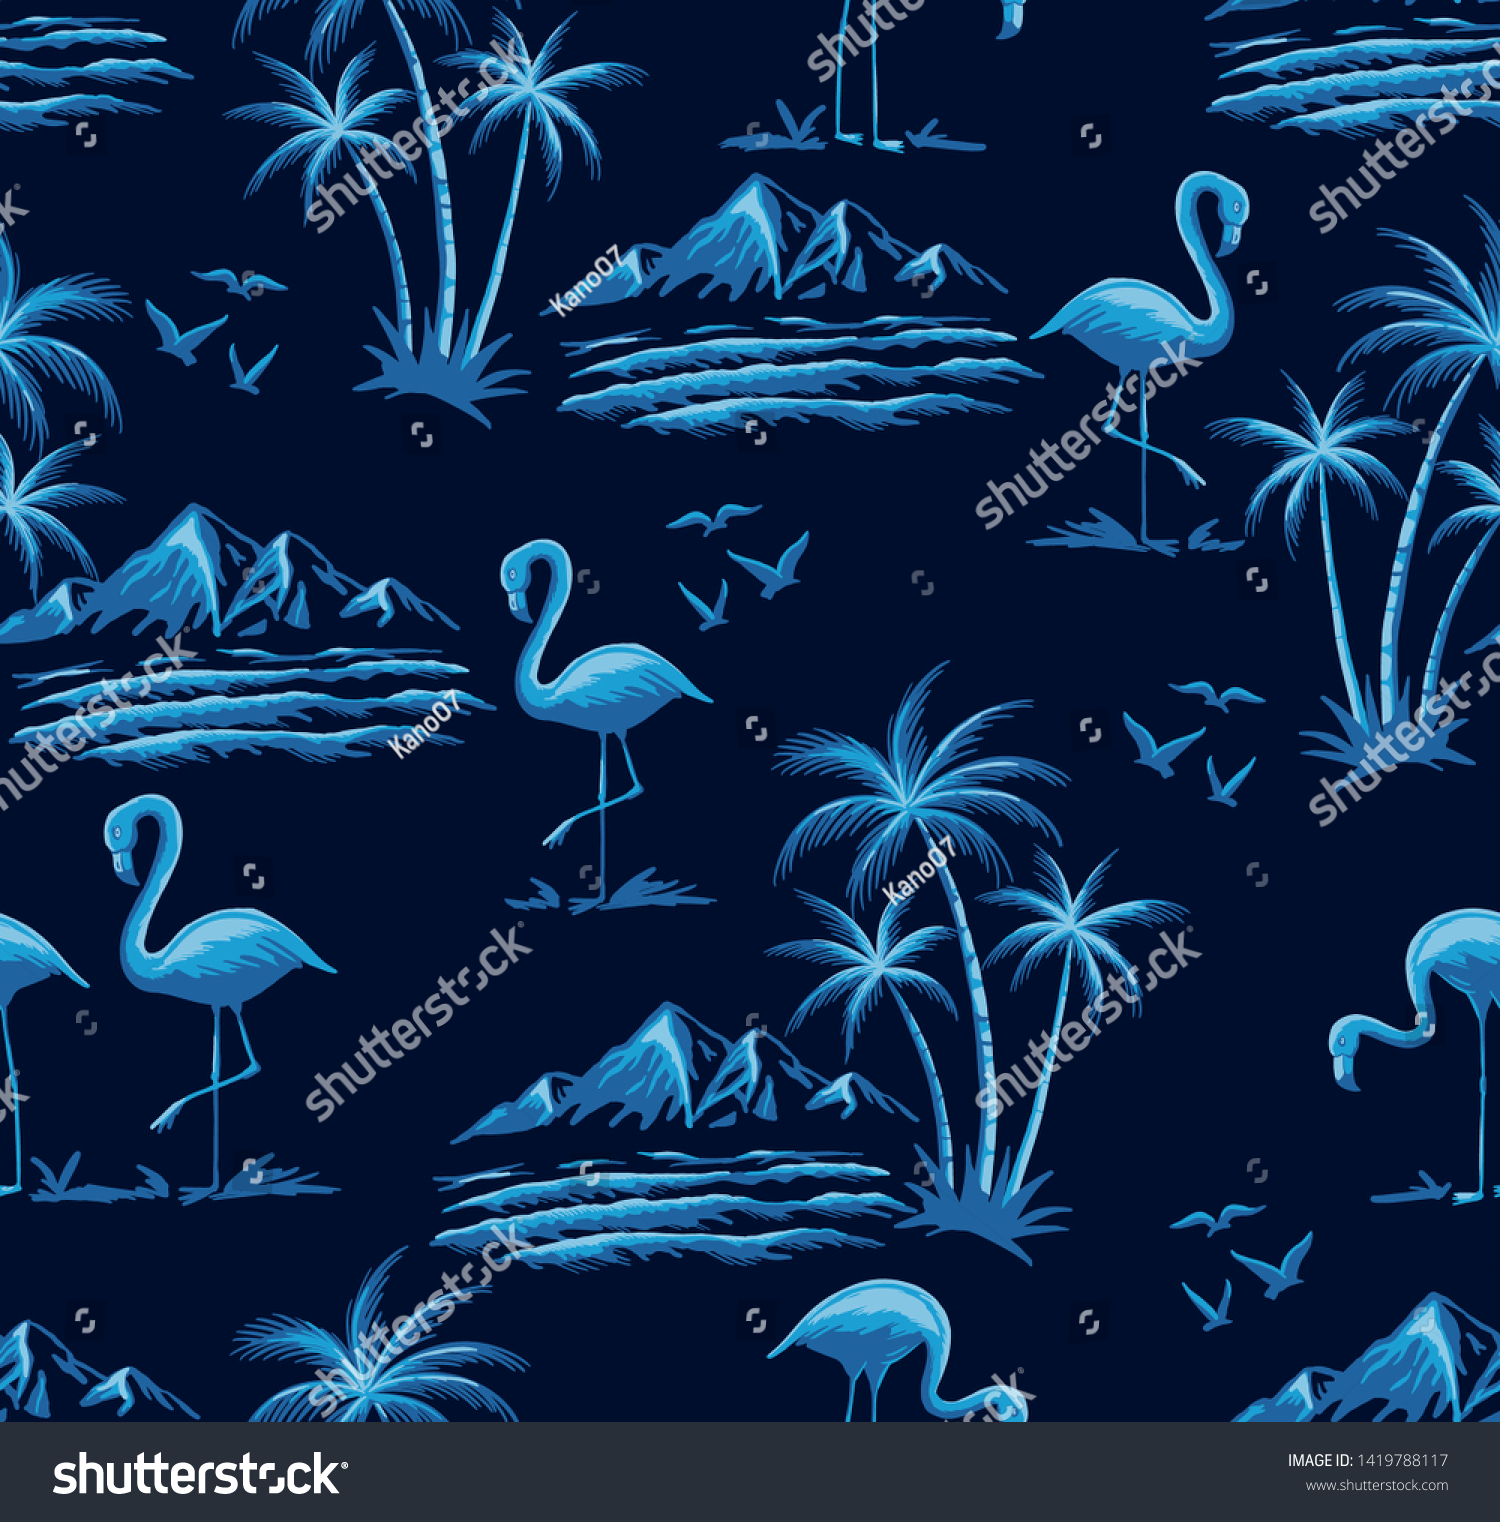 Hand drawn vector seamless island pattern on navy background. Landscape with palm trees, beach , flamingo birds, ocean and mountains.